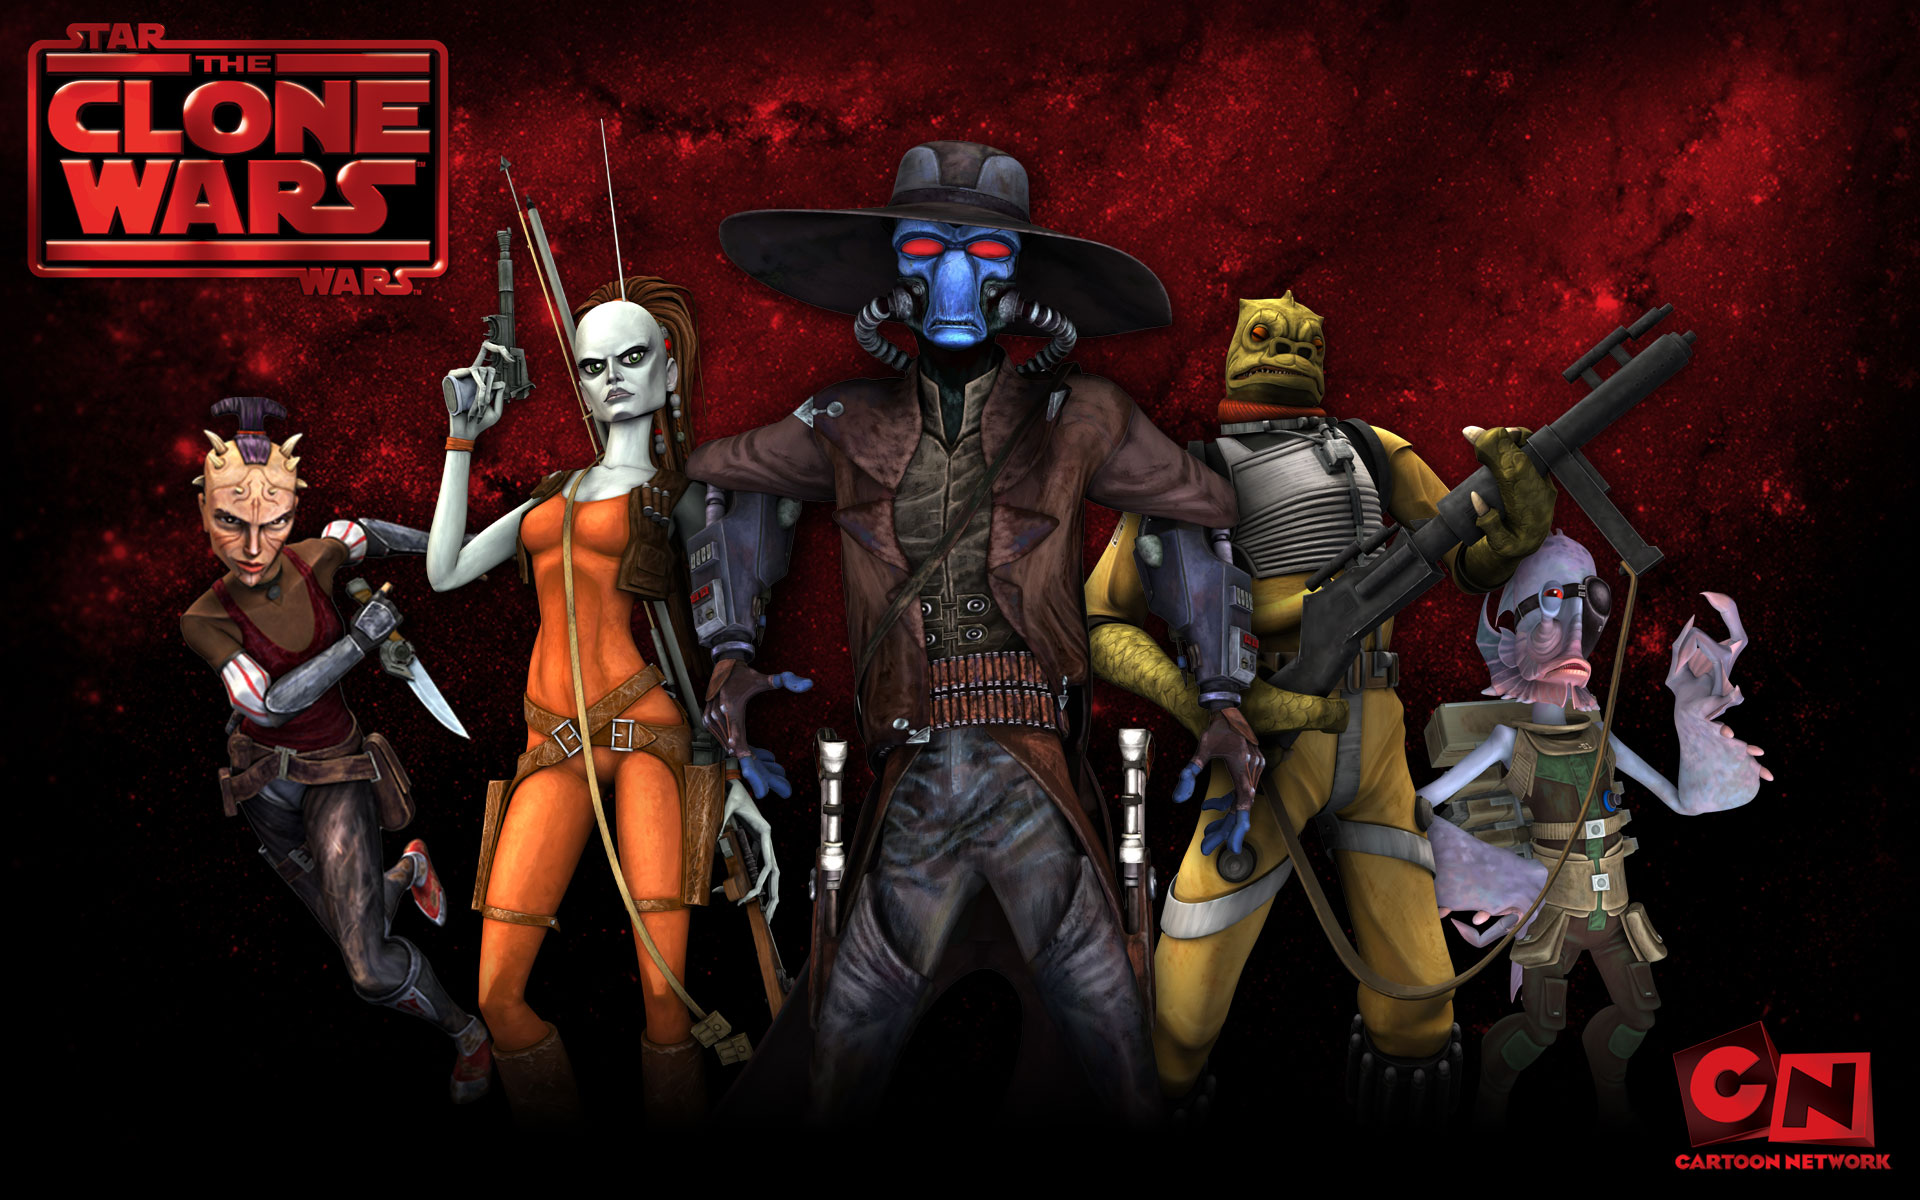 Star wars the clone wars season 2 wallpaper